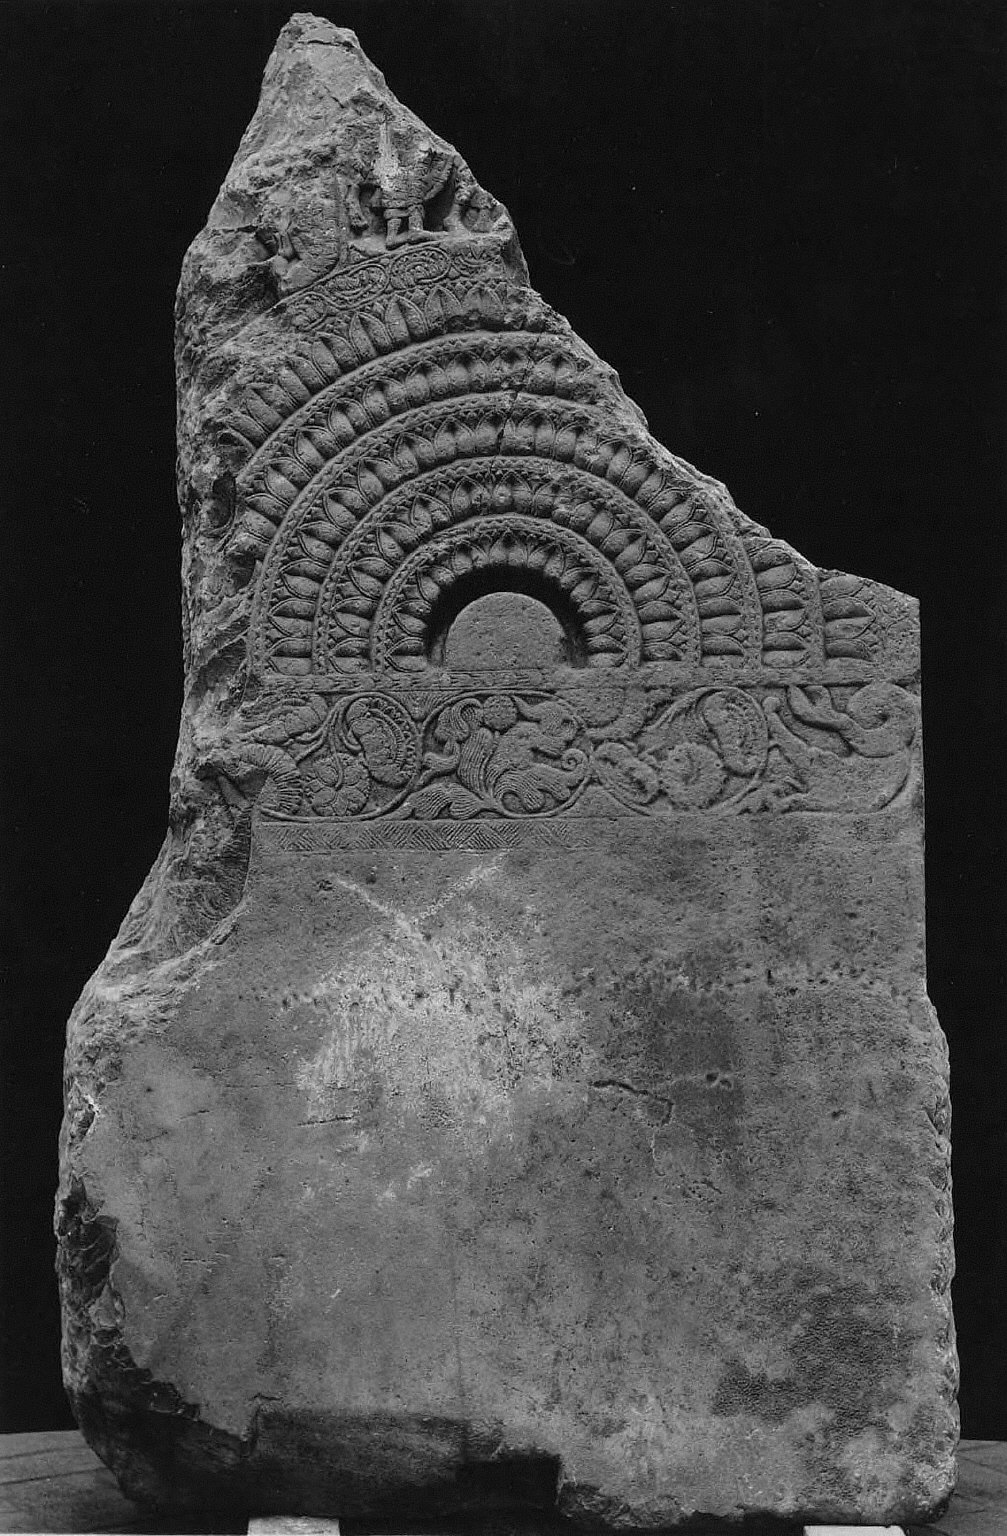 Architectural fragment: Half wheel with floral motifs